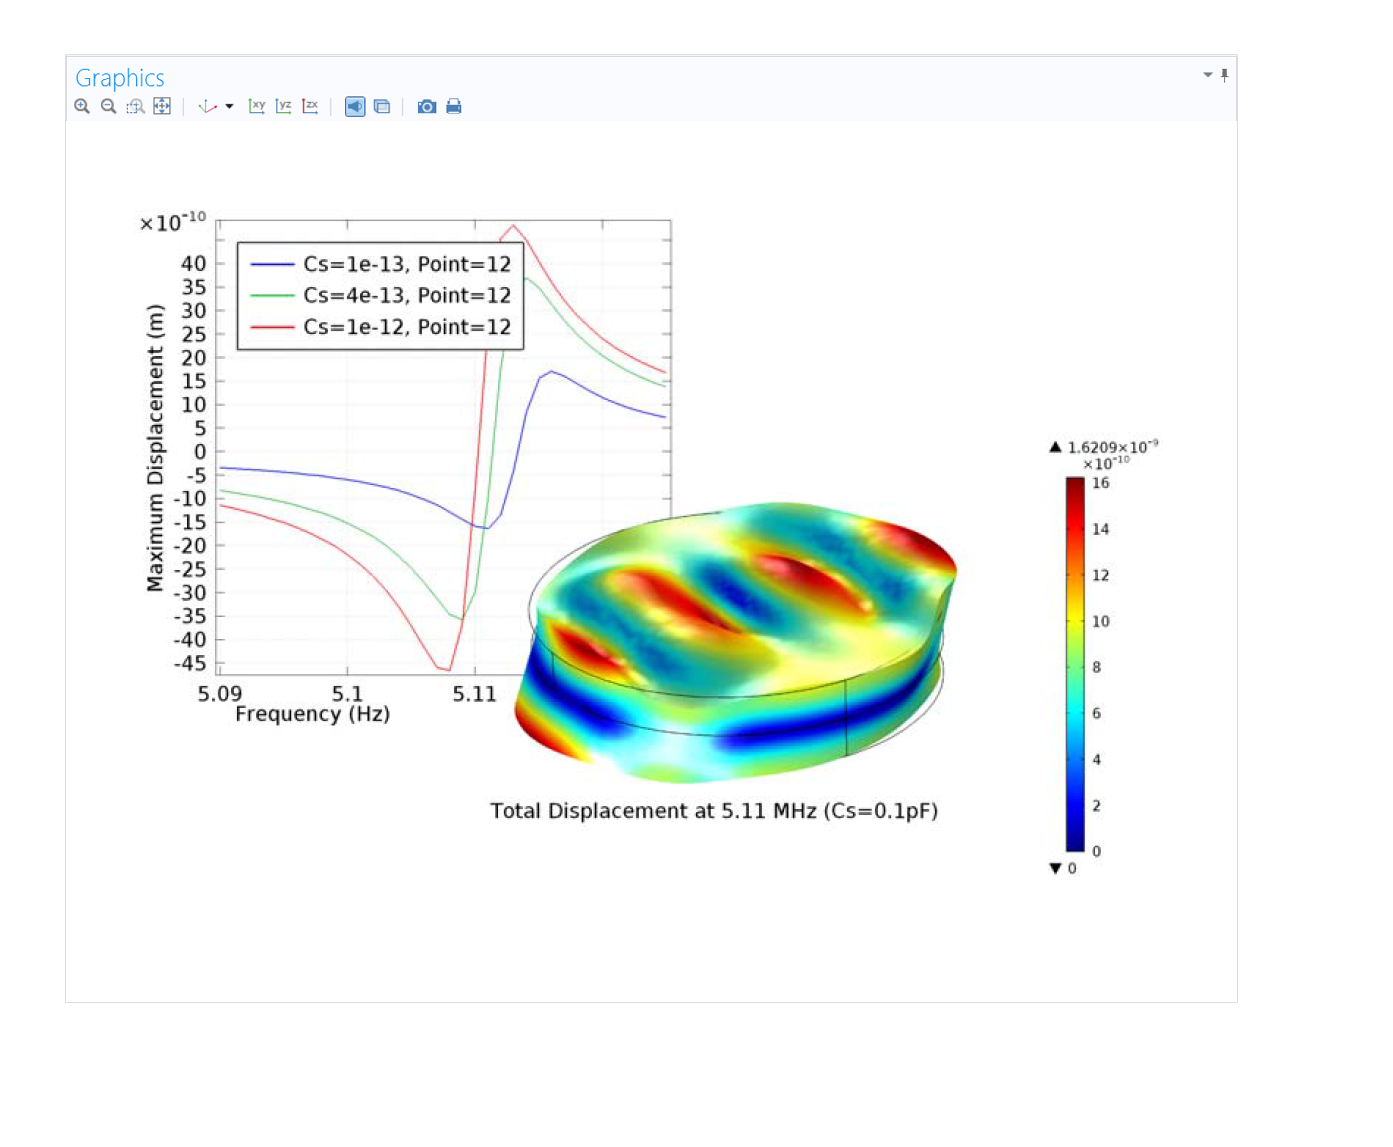 Mems Software For Microelectromechanical Systems Simulation Quartz Oscillator Circuits Http Circuitdiagramhqewnet Quarts Resonator The Mechanical Response Of A Thickness Shear Together With Graph Showing Effect Series Capacitance On